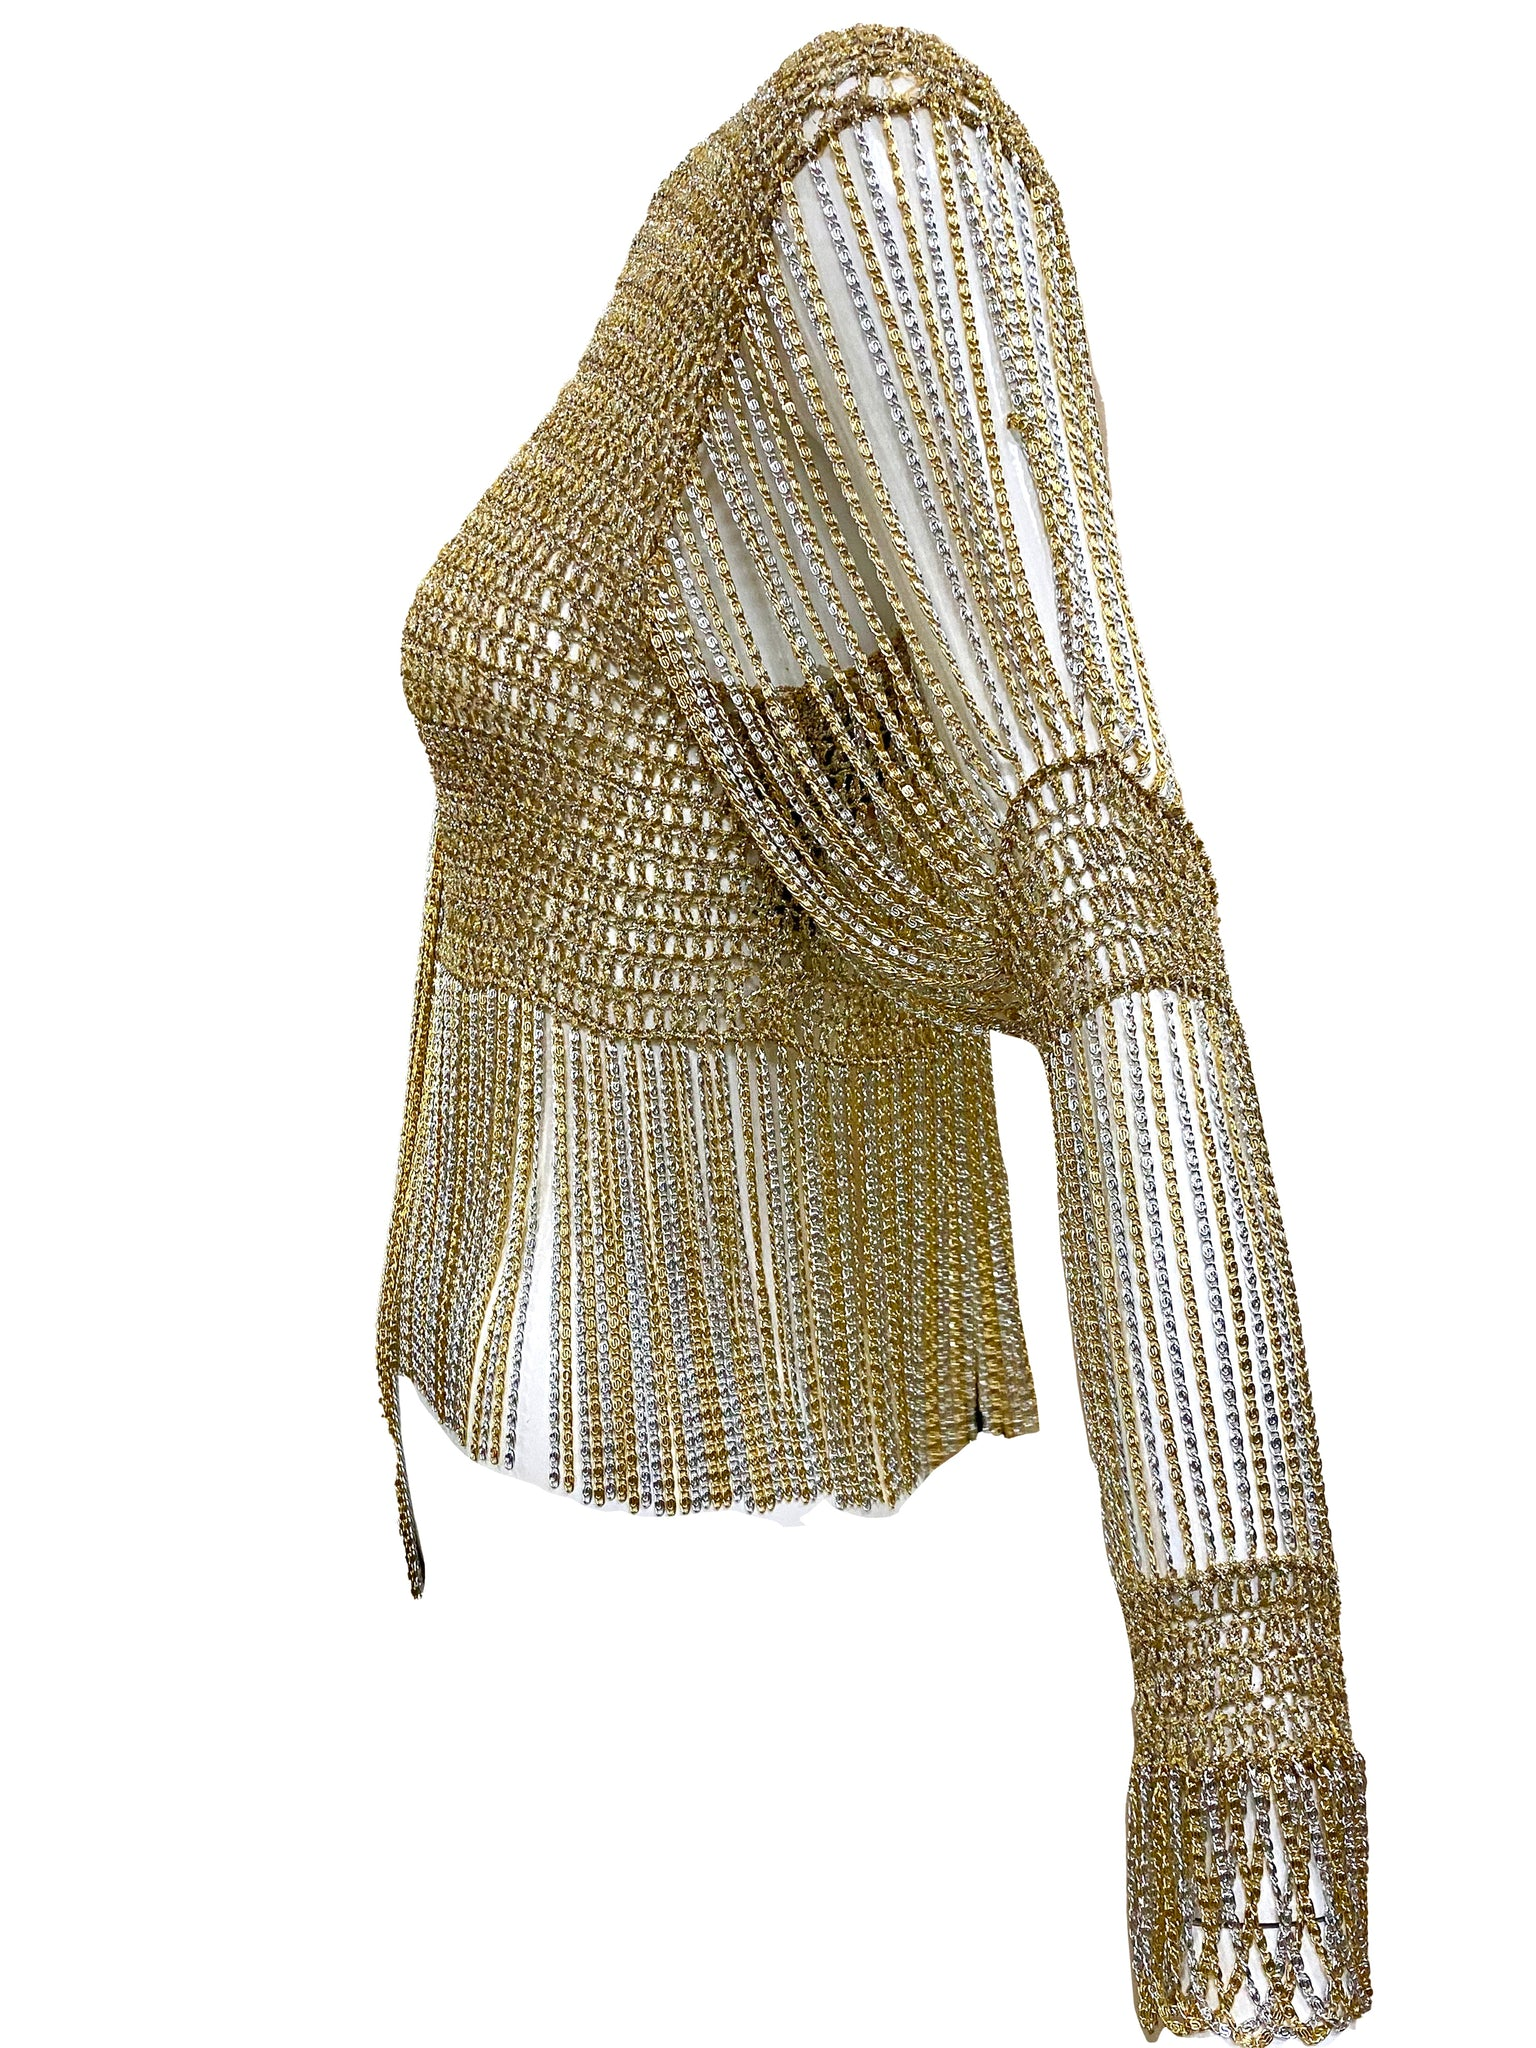 Loris Azzaro Gold and Silver Cardigan with Chain Fringe SIDE 2 of 5